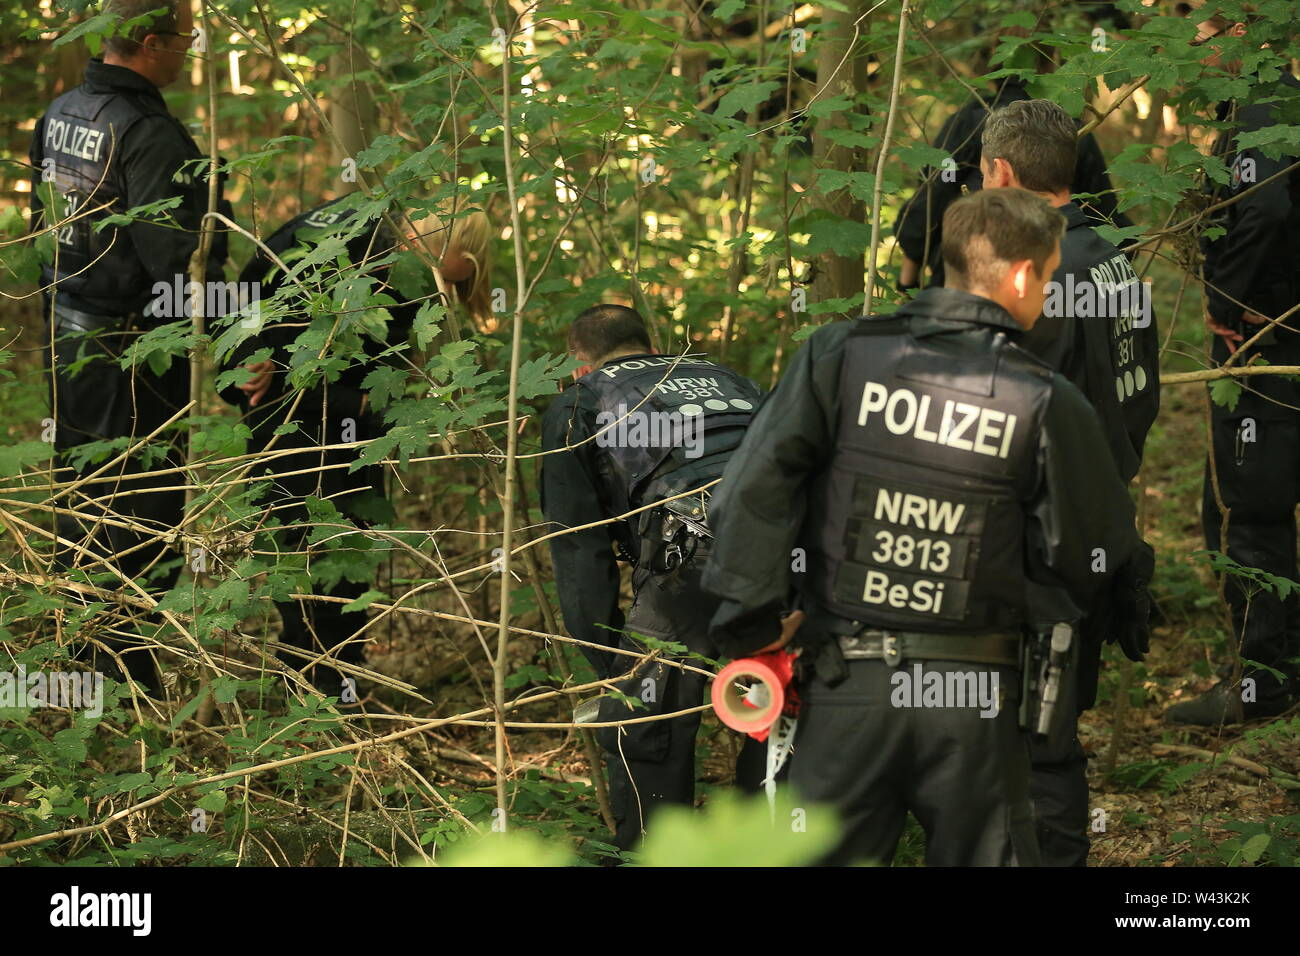 19 July 2019, North Rhine-Westphalia, Mönchengladbach: A police patrol of a hundred is combing the park where a corpse is said to have been deposited. The police assume a capital offense and a homicide squad has been set up. Photo: David Young/dpa - Stock Image